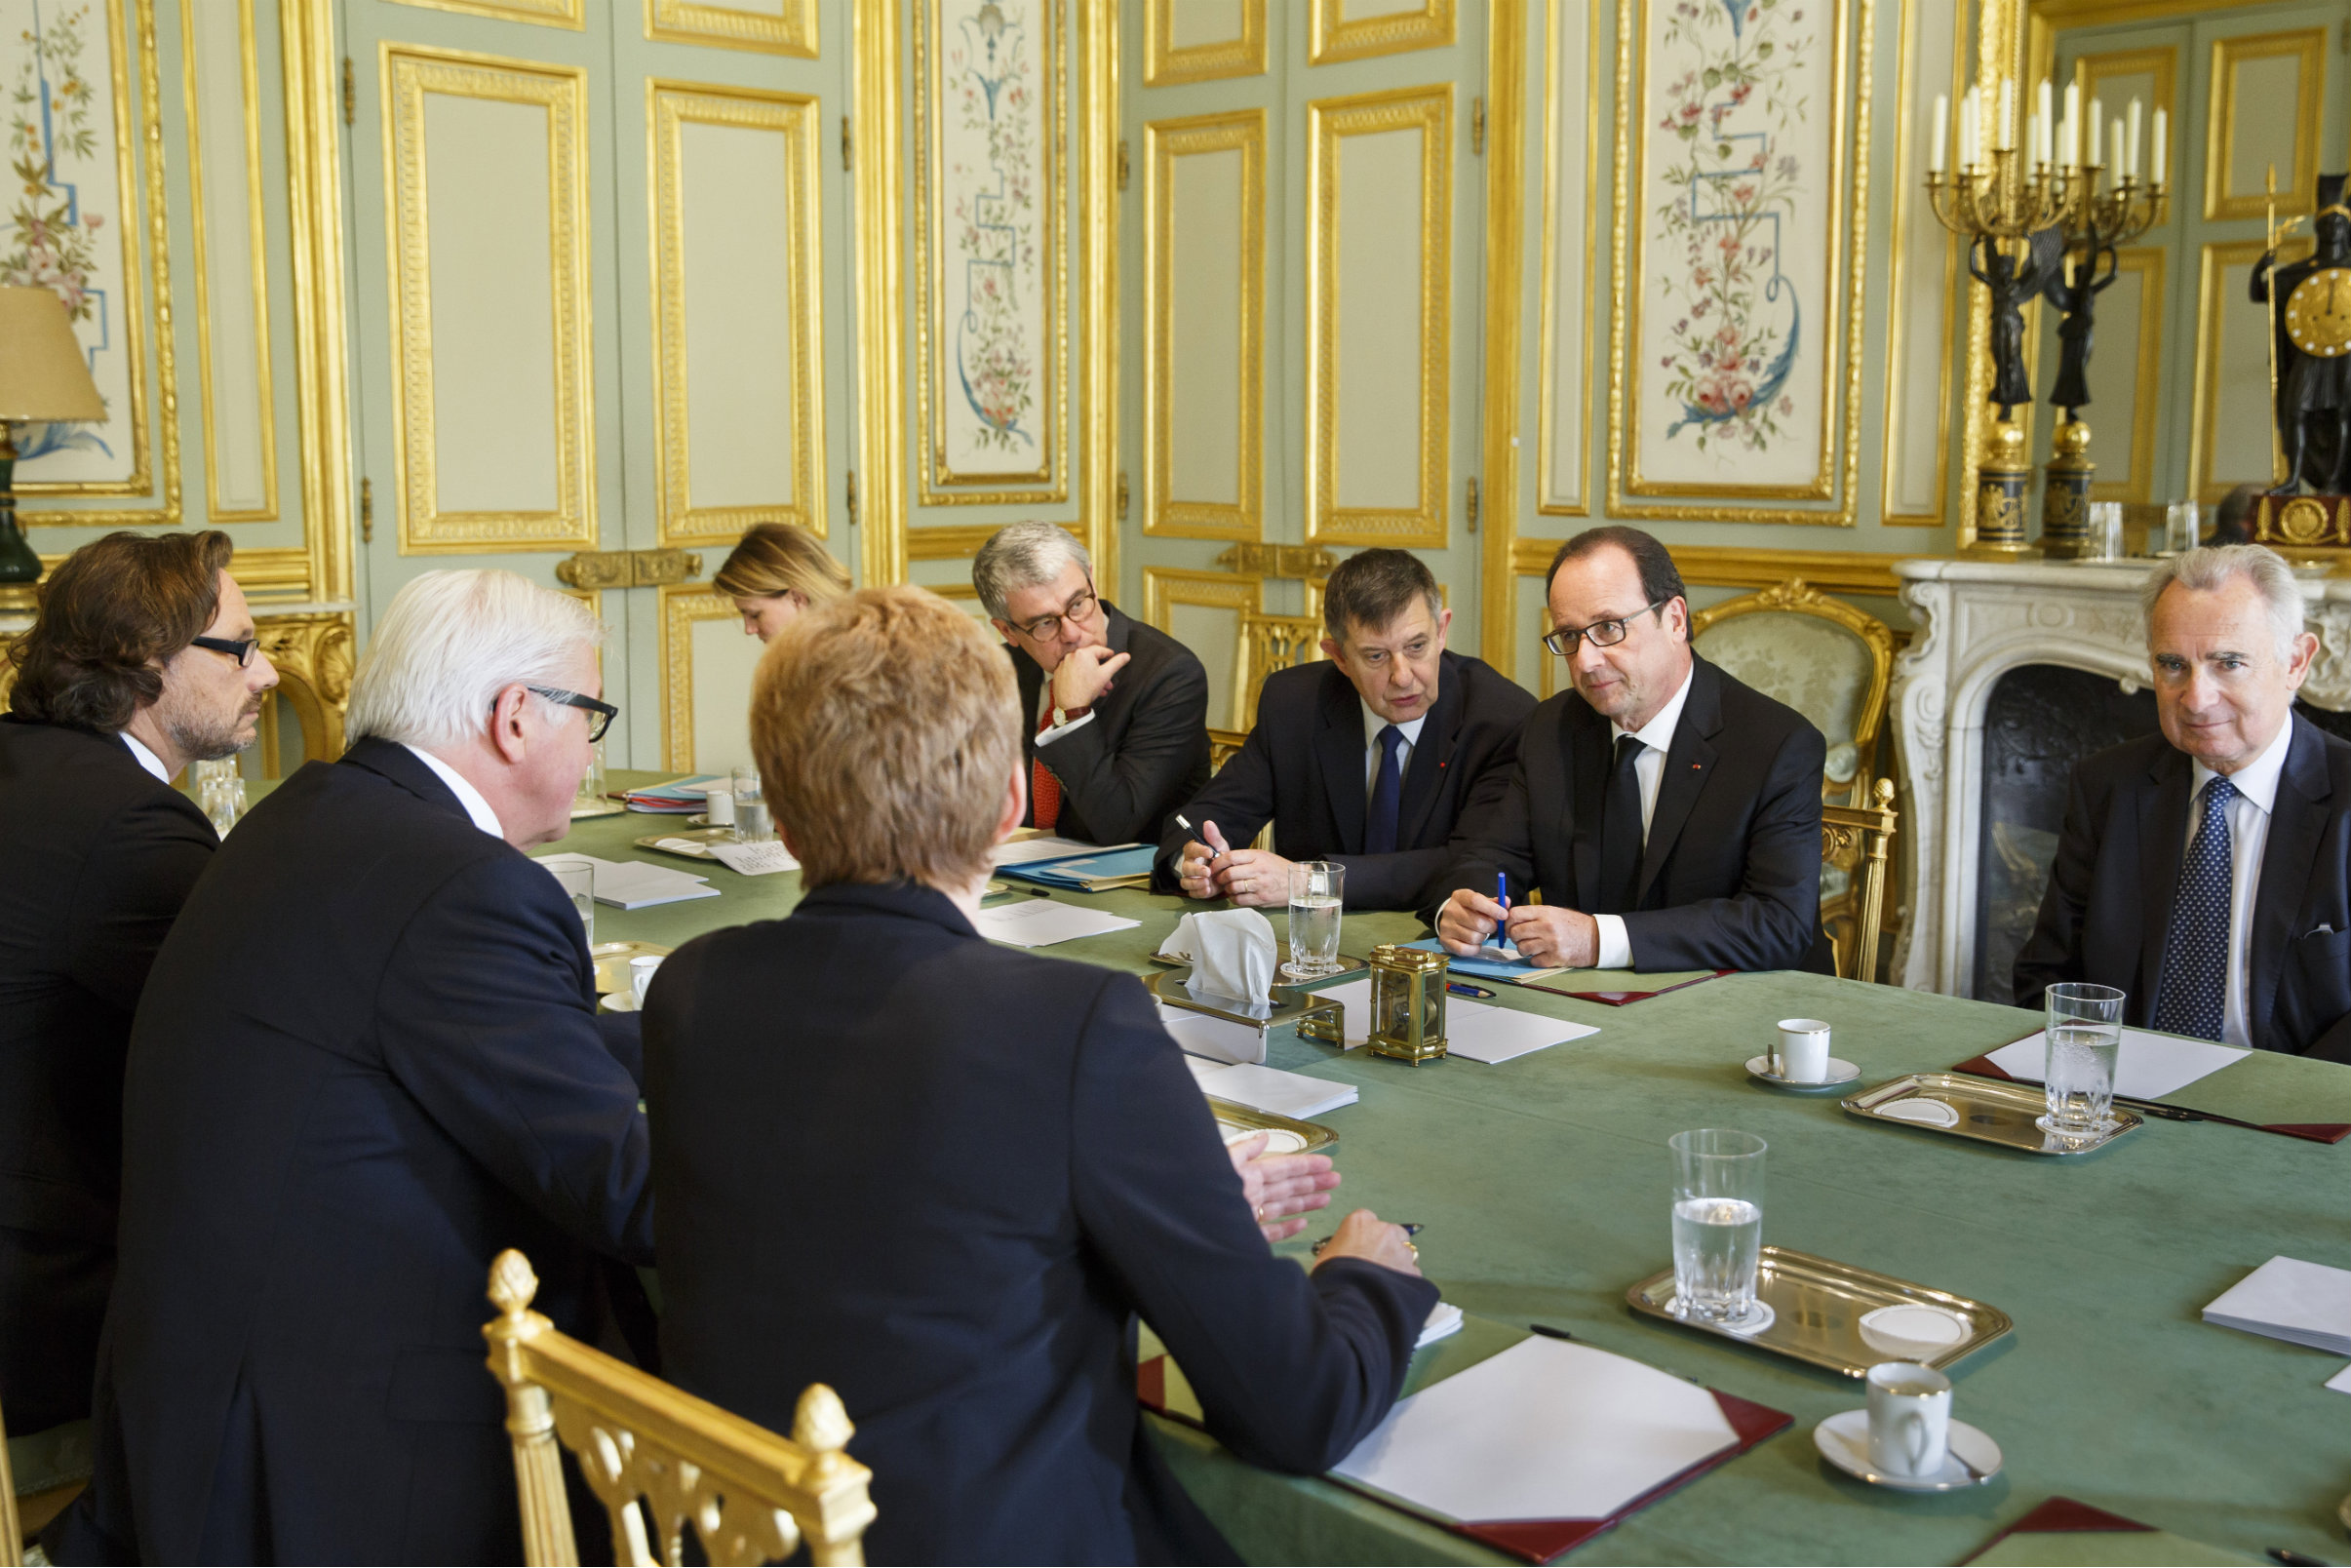 German Foreign Minister Frank-Walter Steinmeier attends as a guest in a meeting of the French cabinet with President Francois Hollande. [Auswärtiges Amt]